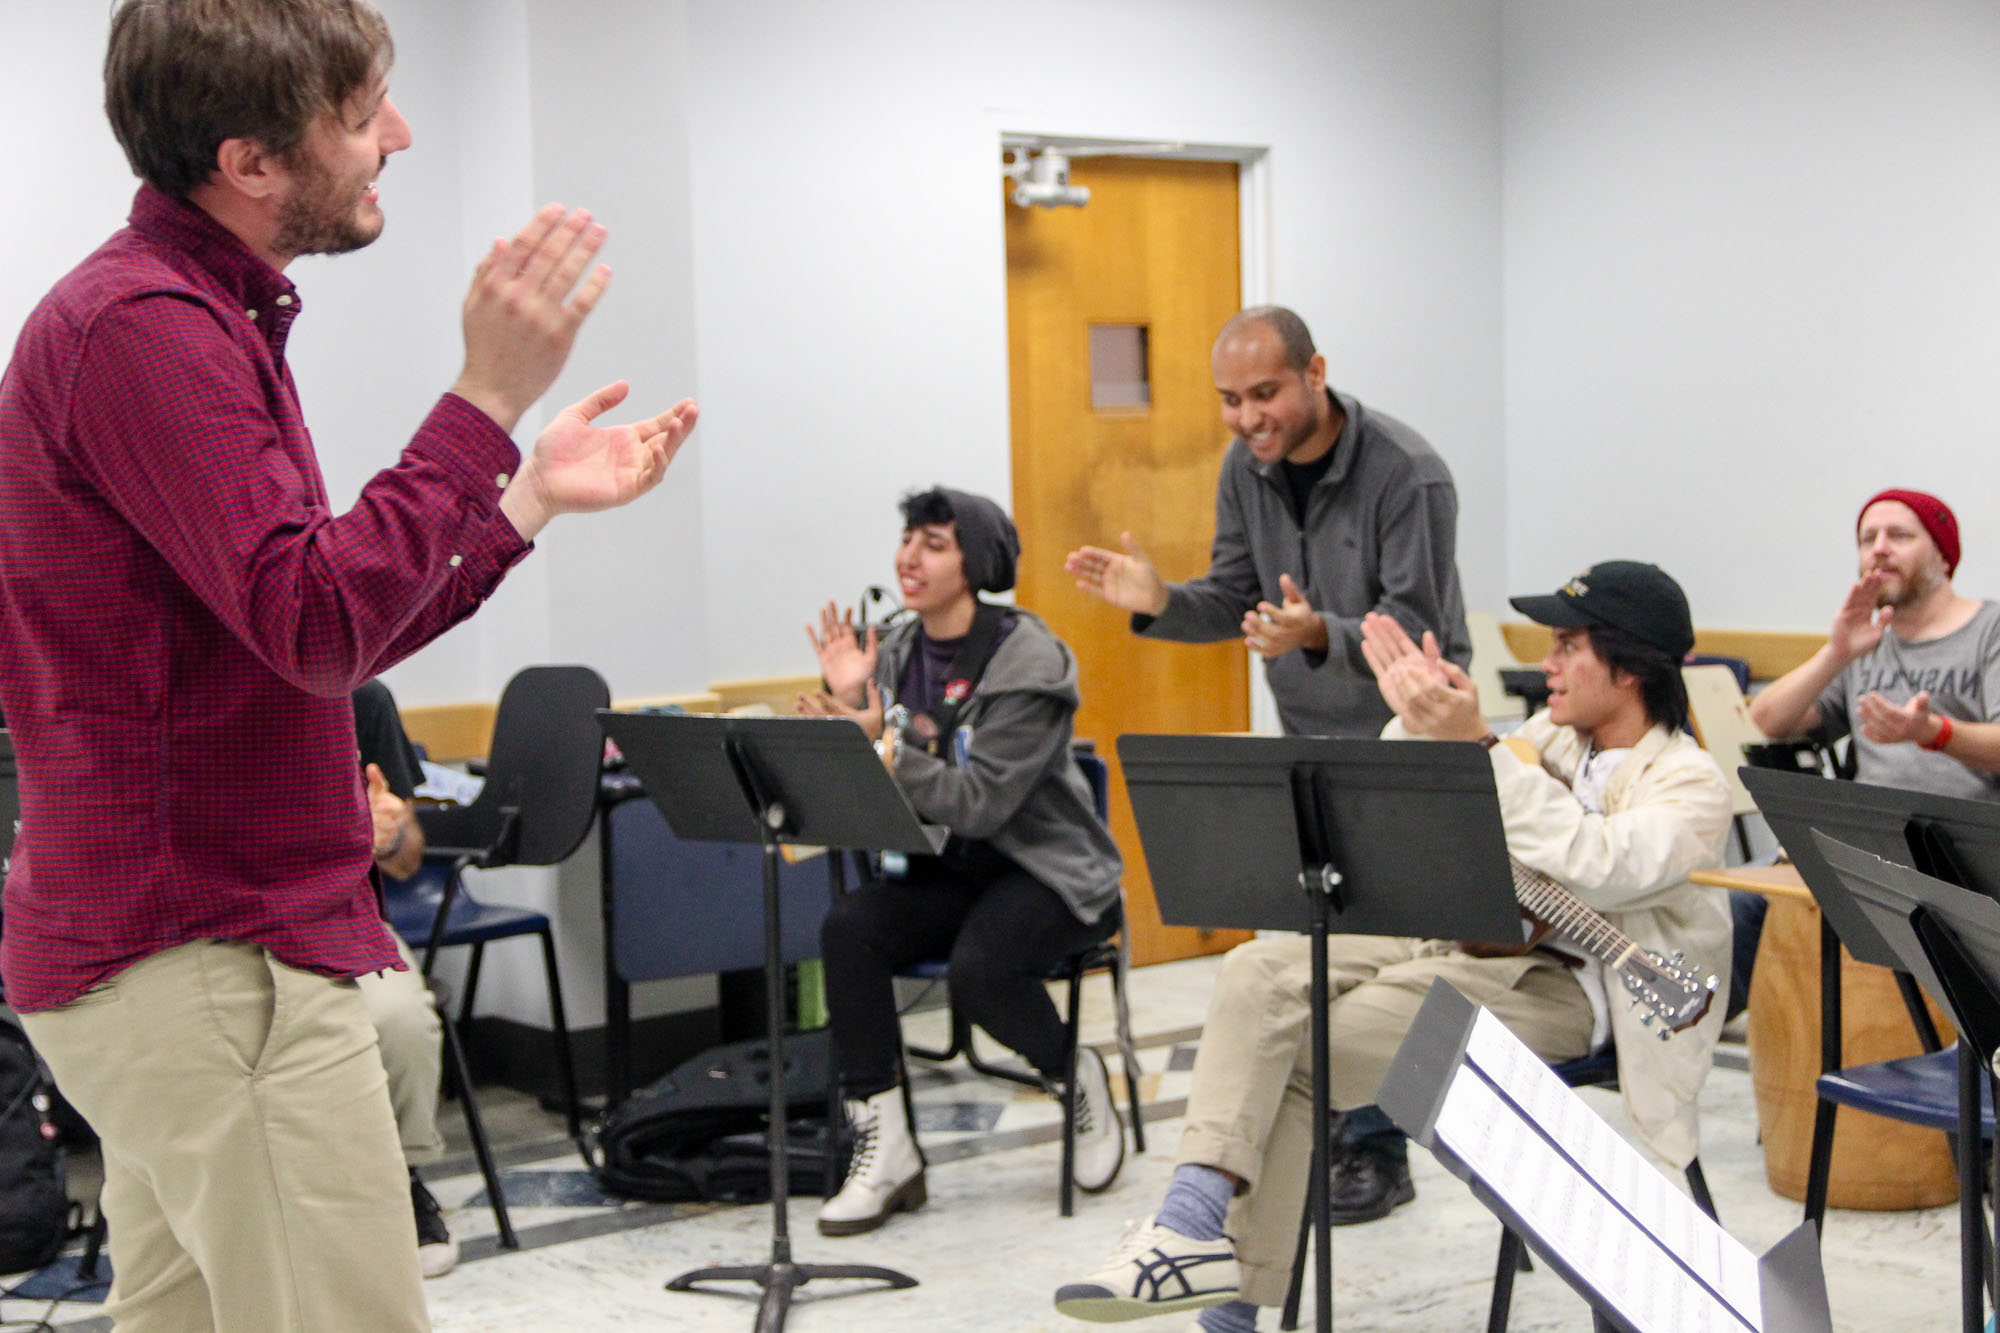 Students participate in Bridge to Everywhere workshop at UCLA's Herb Alpert School of Music. (Kim Nguyen Tran)